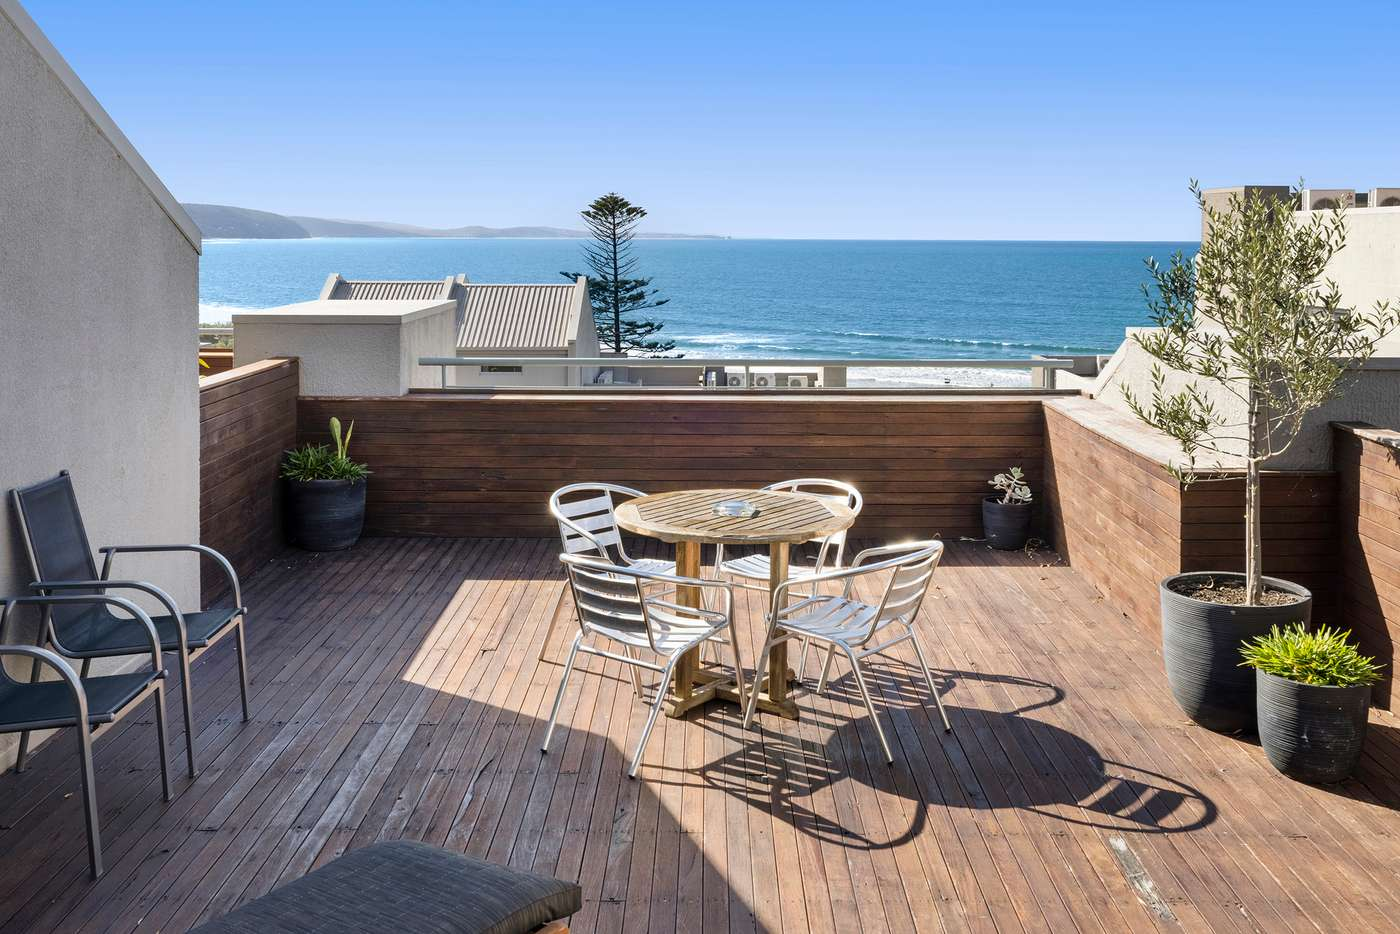 Main view of Homely apartment listing, E321/148-174 Mountjoy Parade, Lorne VIC 3232